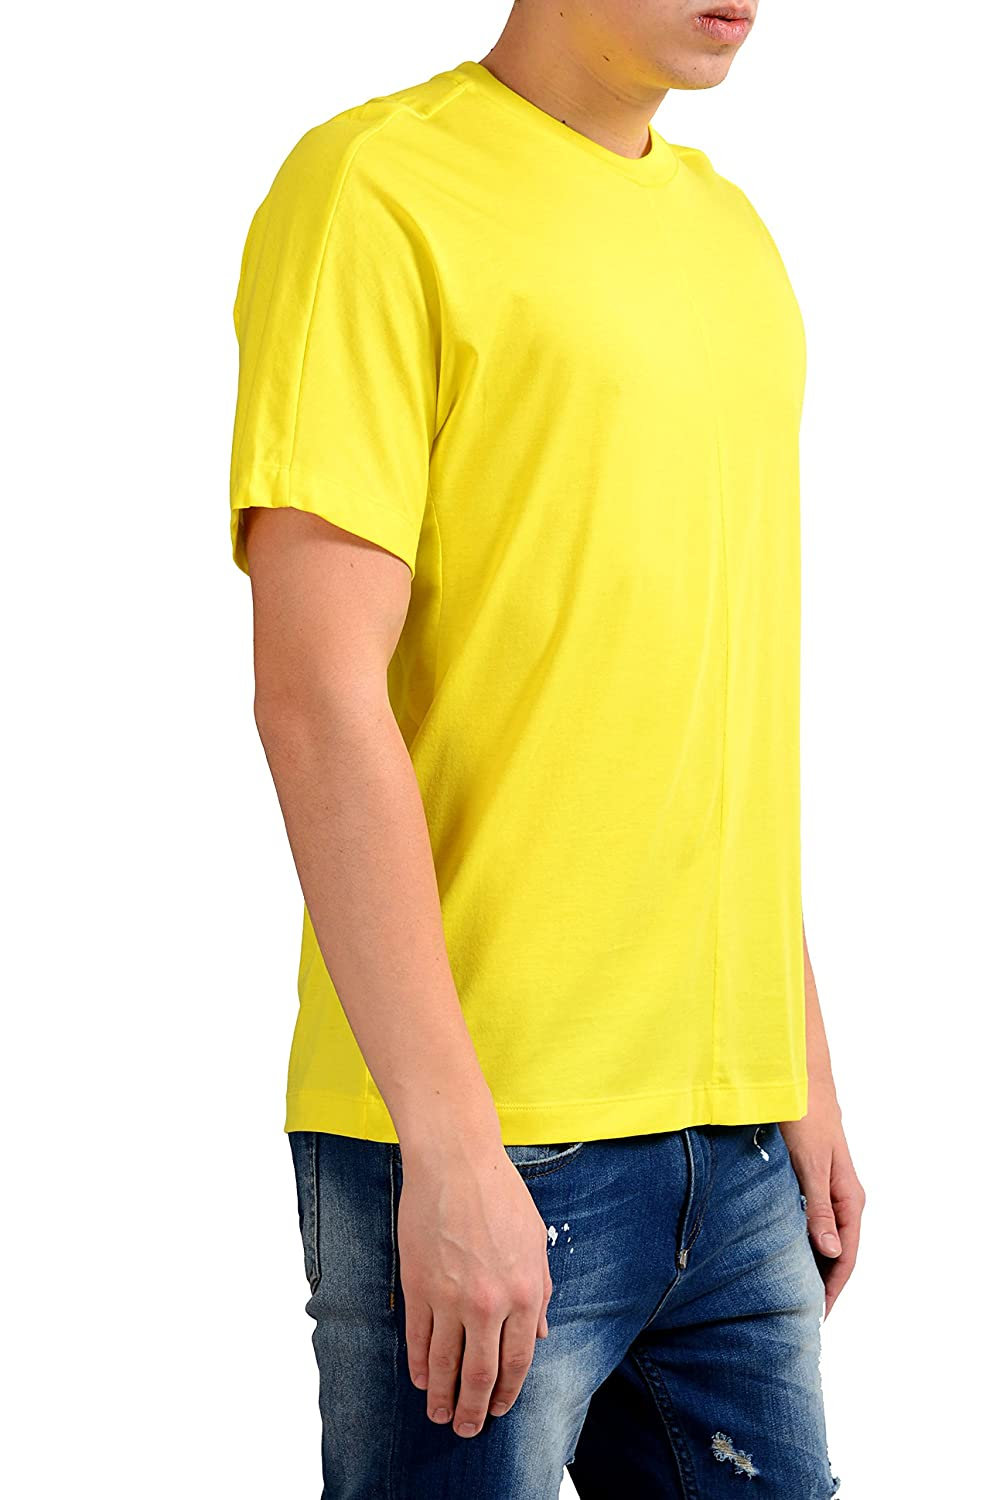 Hugo Boss Tiburt 23 Mens Yellow Crewneck T-Shirt US M IT 50